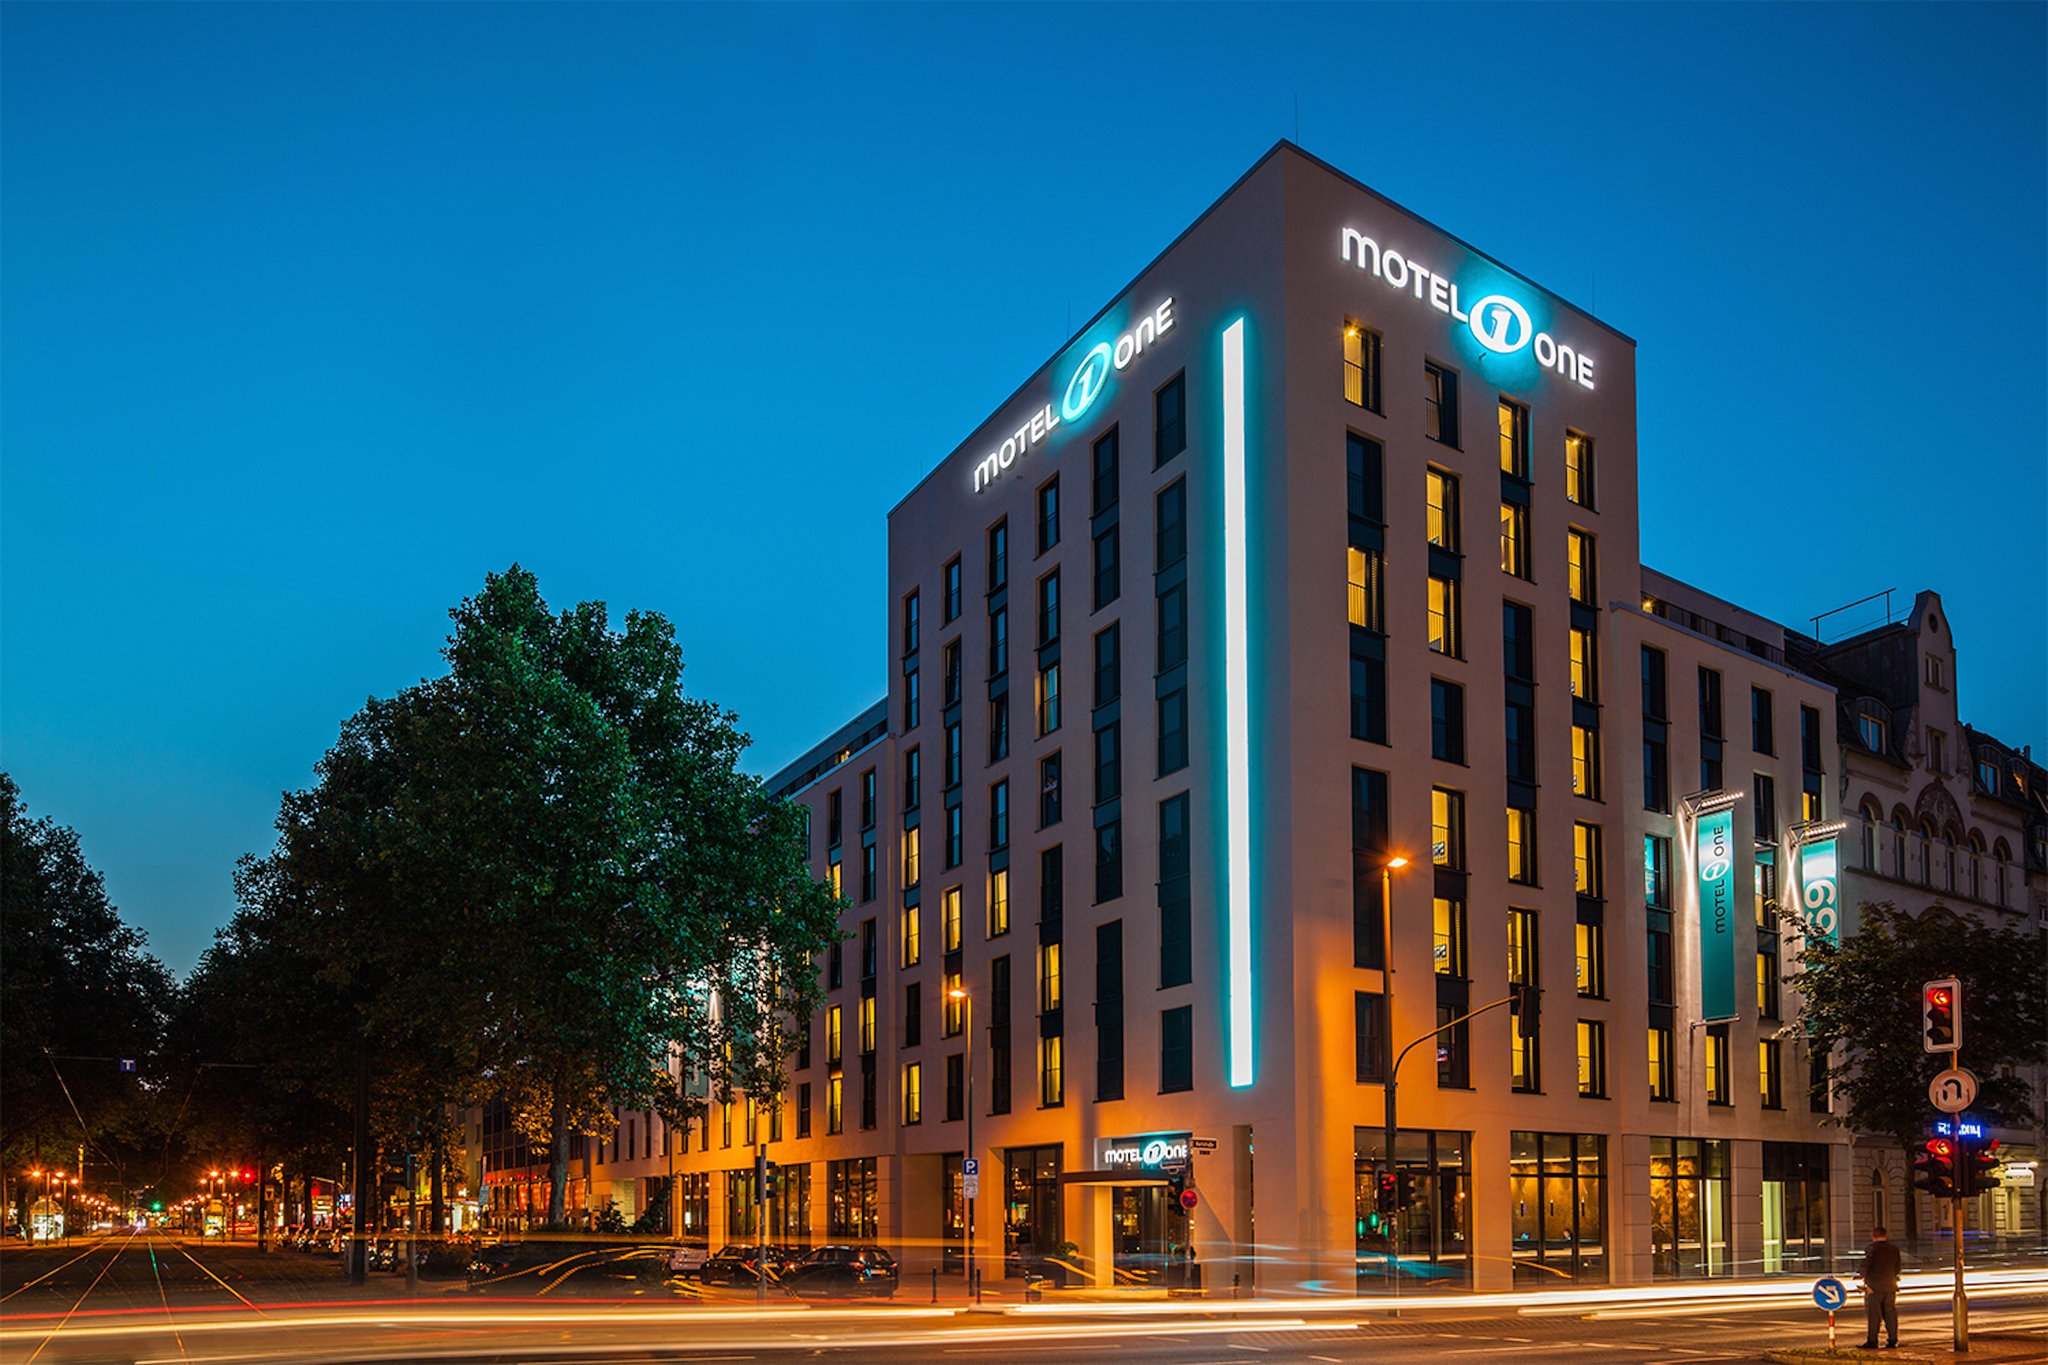 Motel One Dusseldorf Hbf